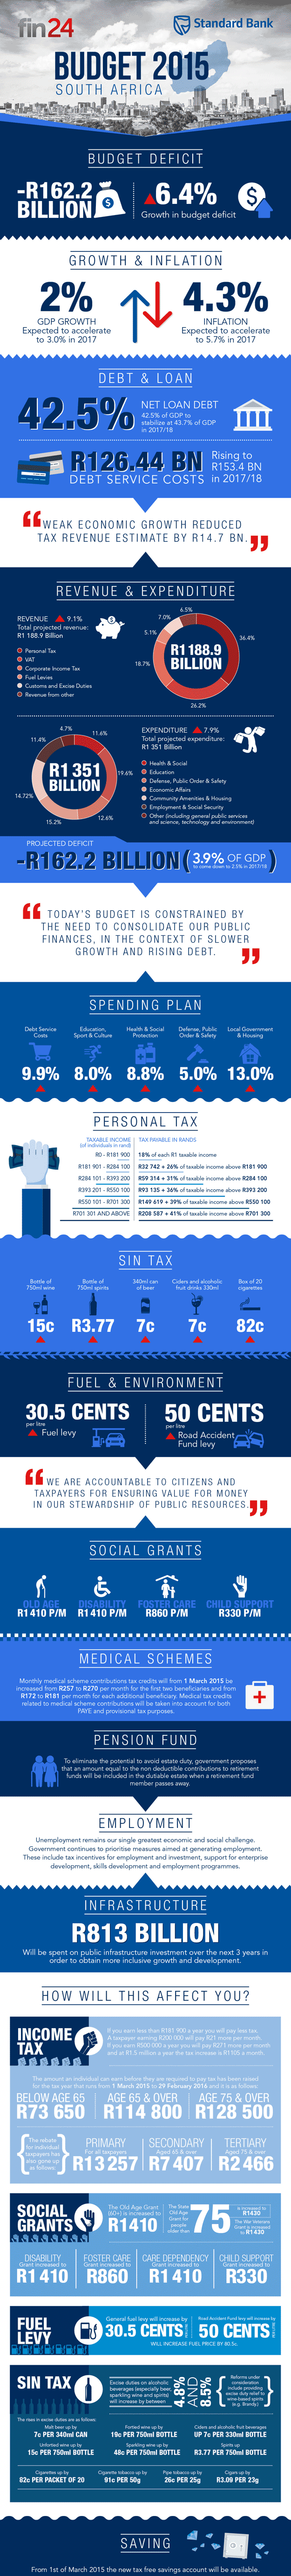 budget2015-infographic.png